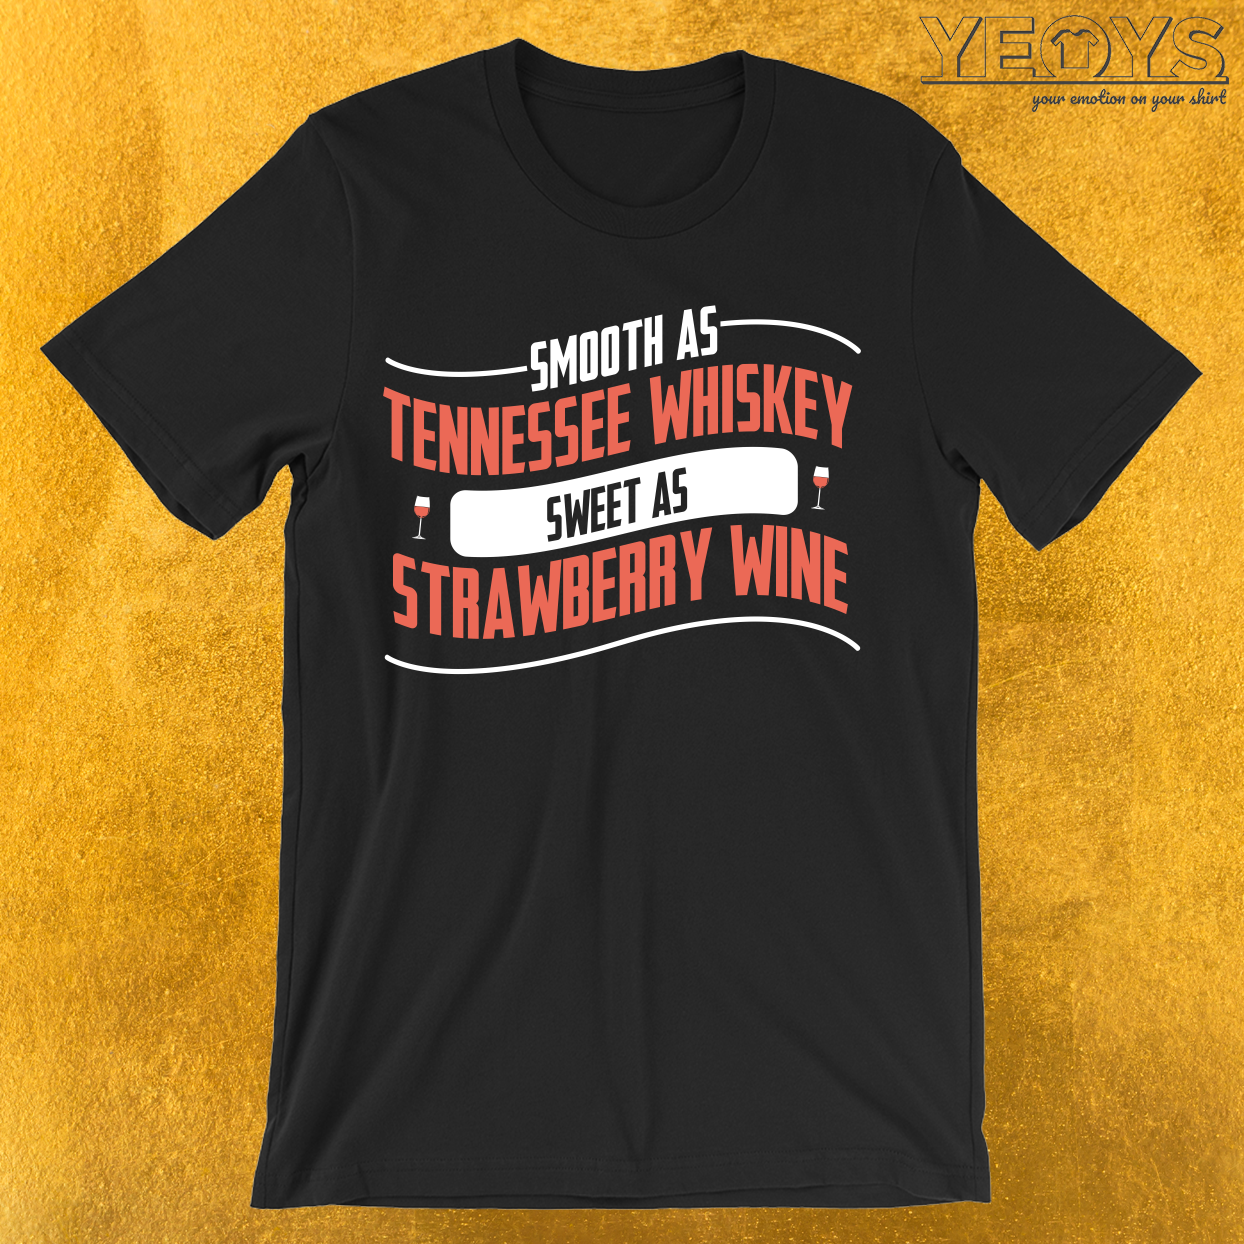 Mens Funny T-Shirt This Is What An Awesome Wine Drinker Looks Like